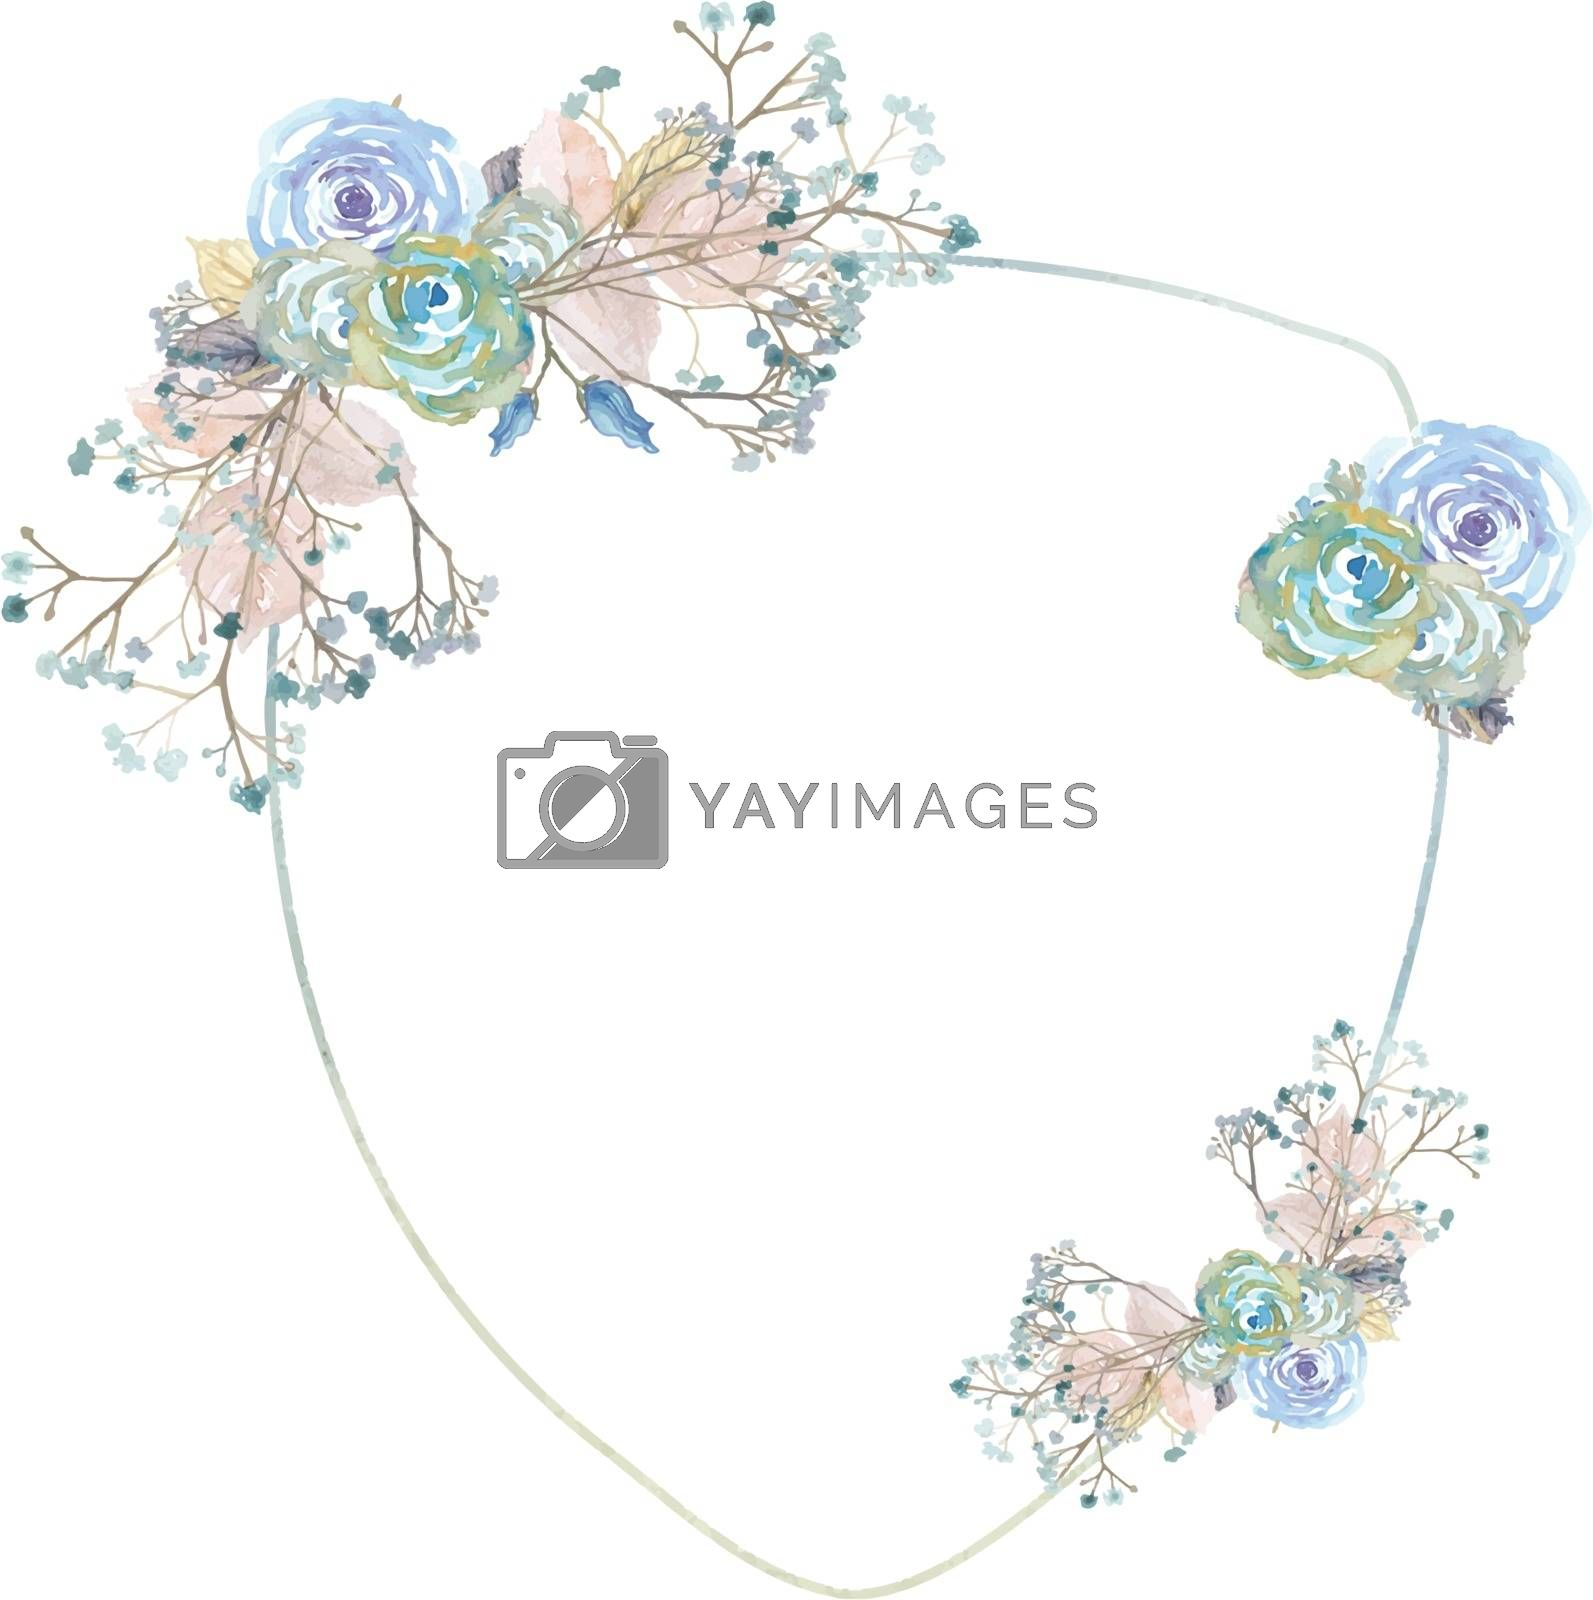 The vector watercolor wedding decoration flower and plant border shield style